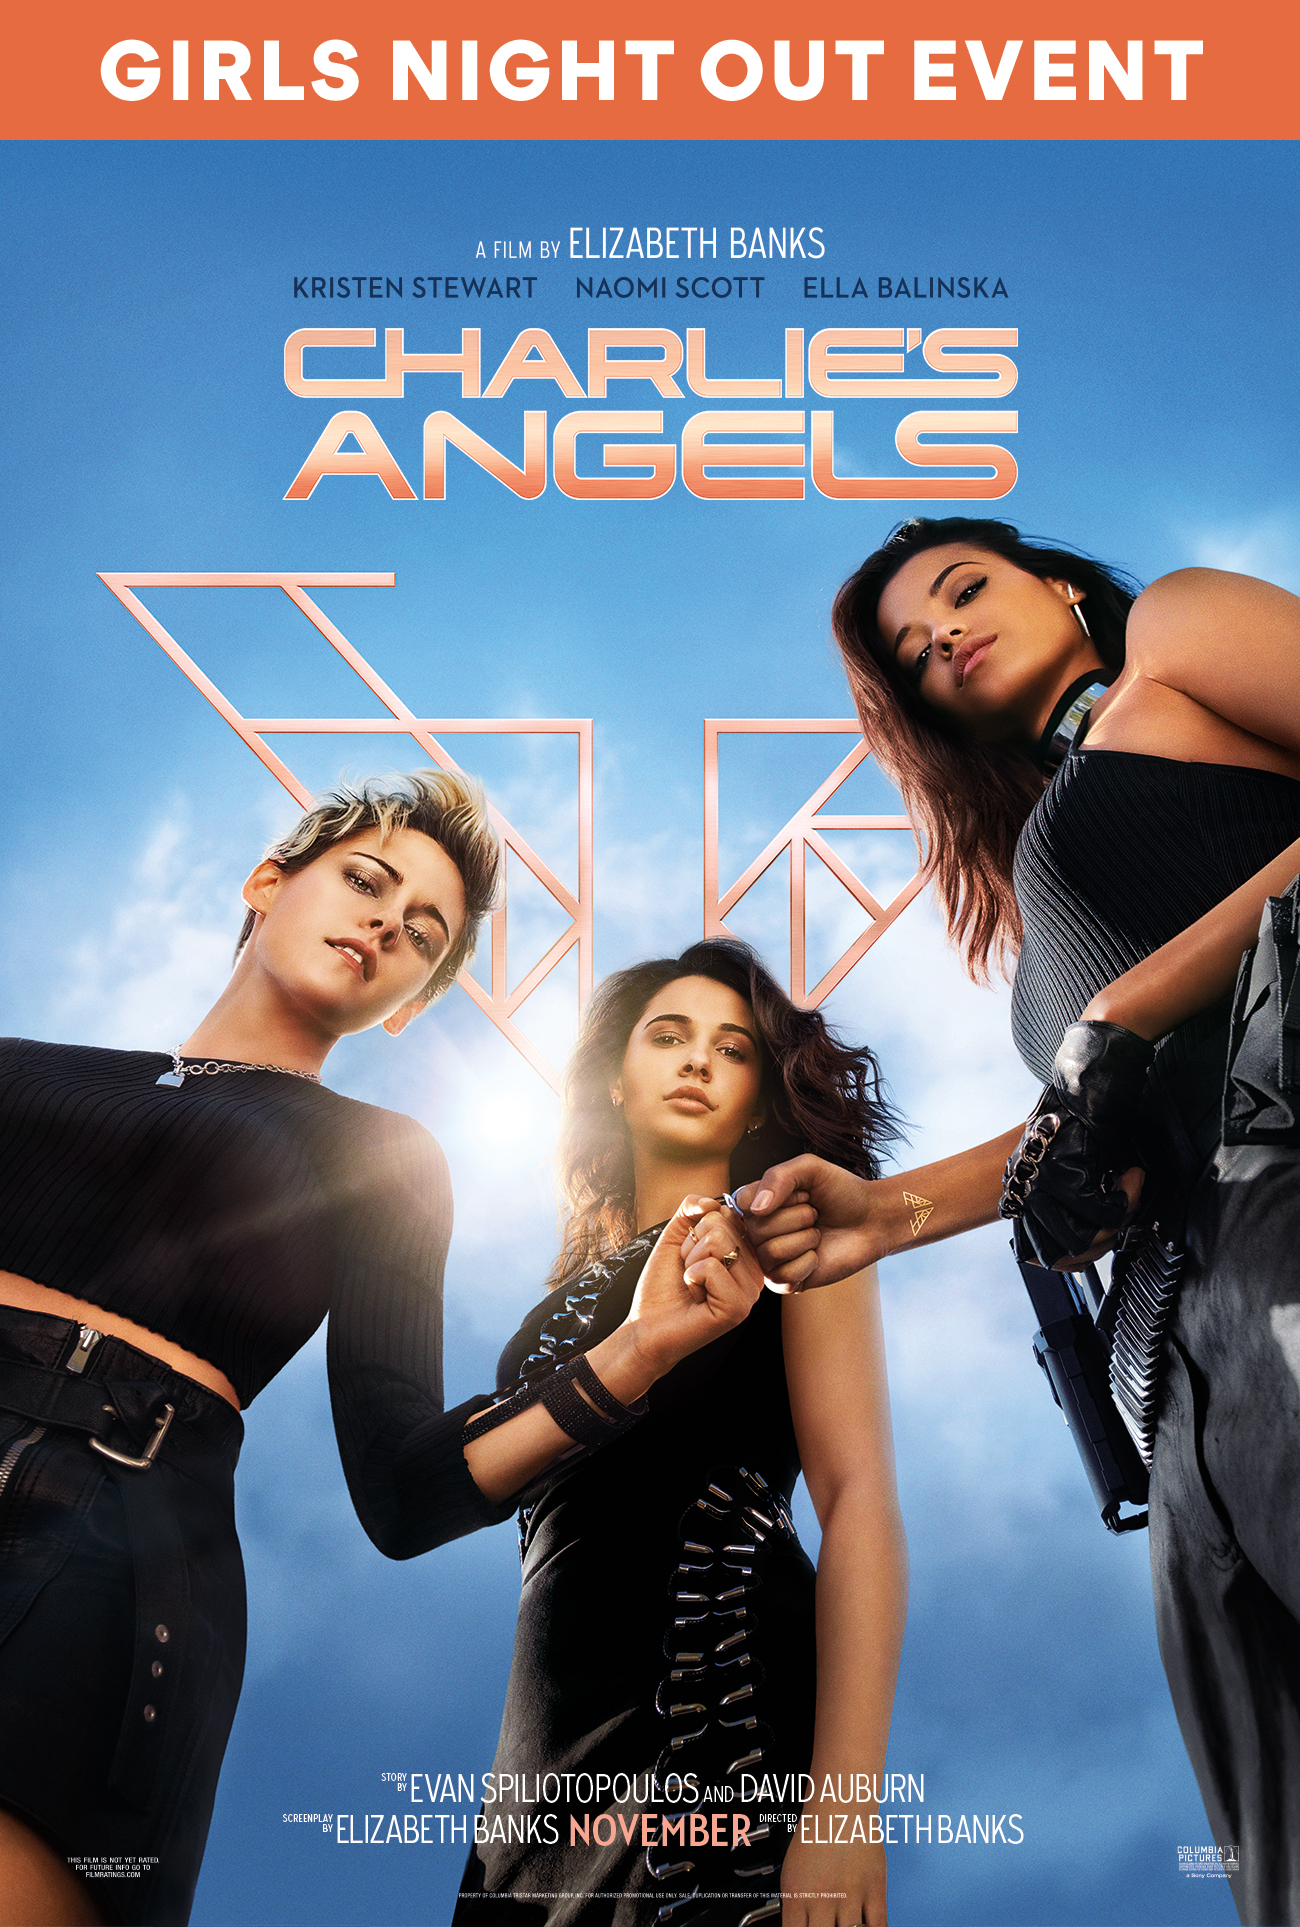 Girls' Night Out: Charlie's Angels